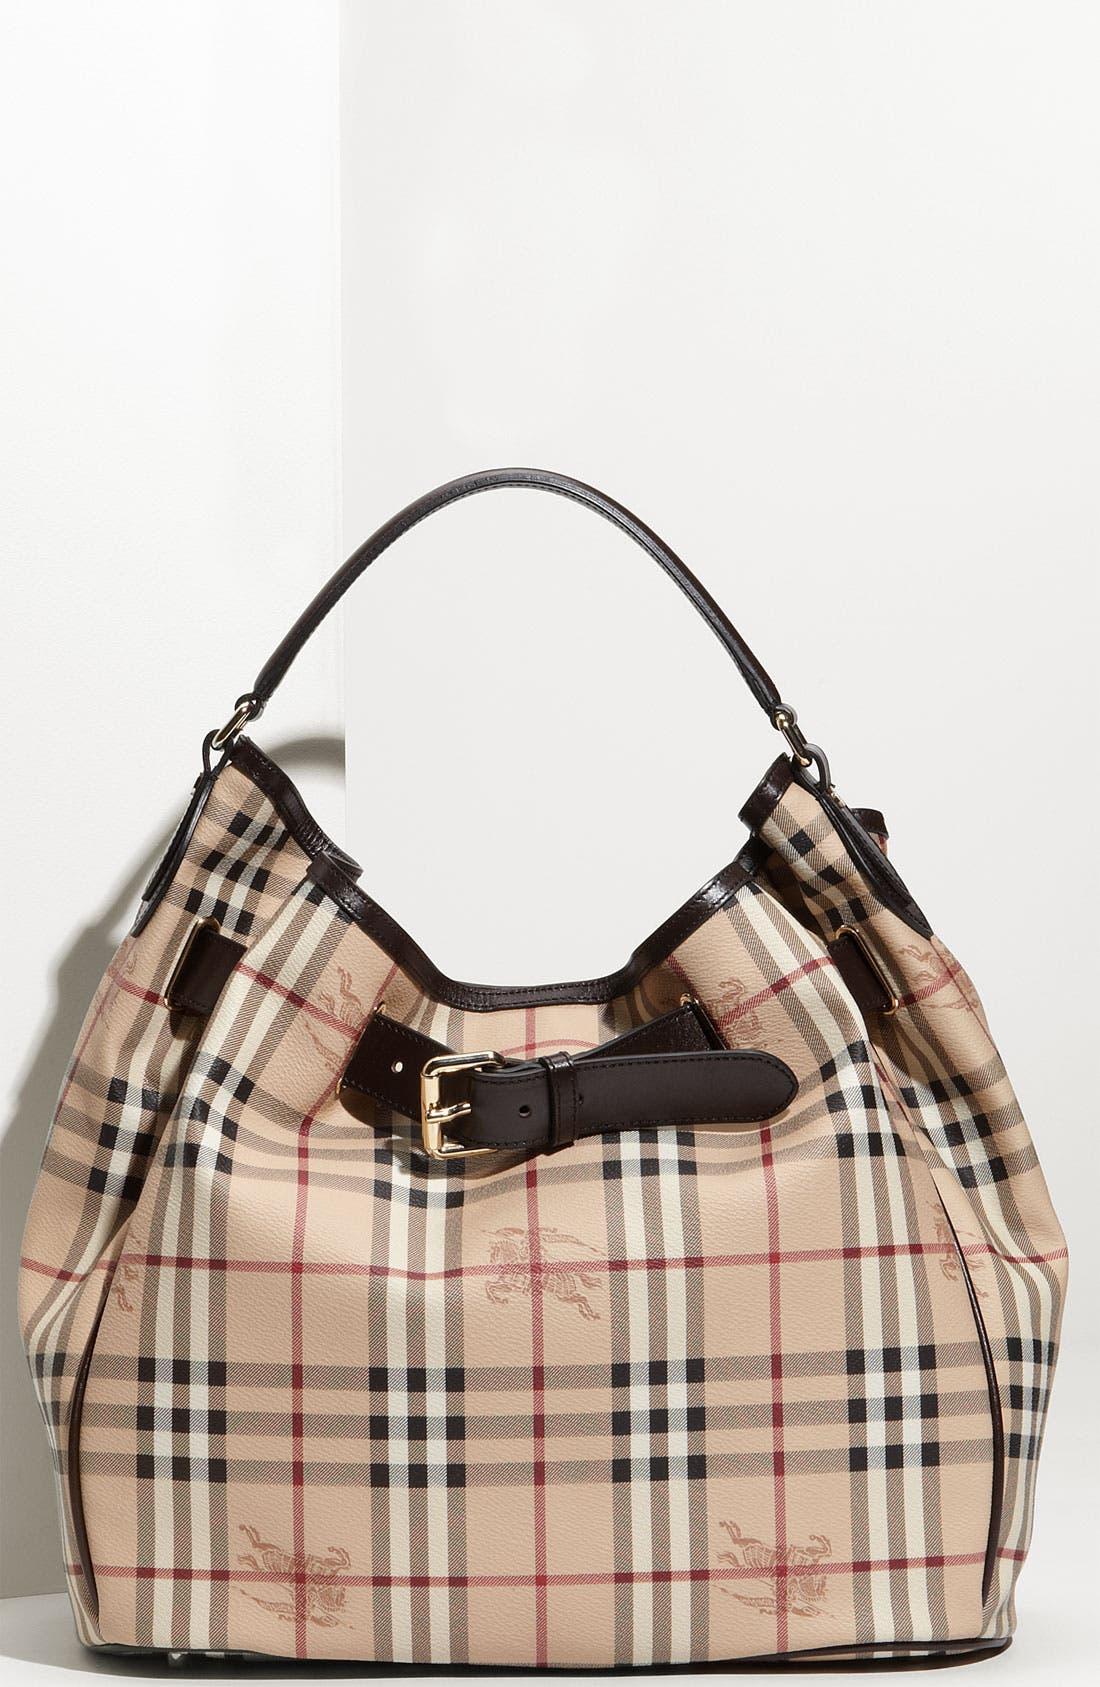 Alternate Image 1 Selected - Burberry 'Haymarket Check' Hobo